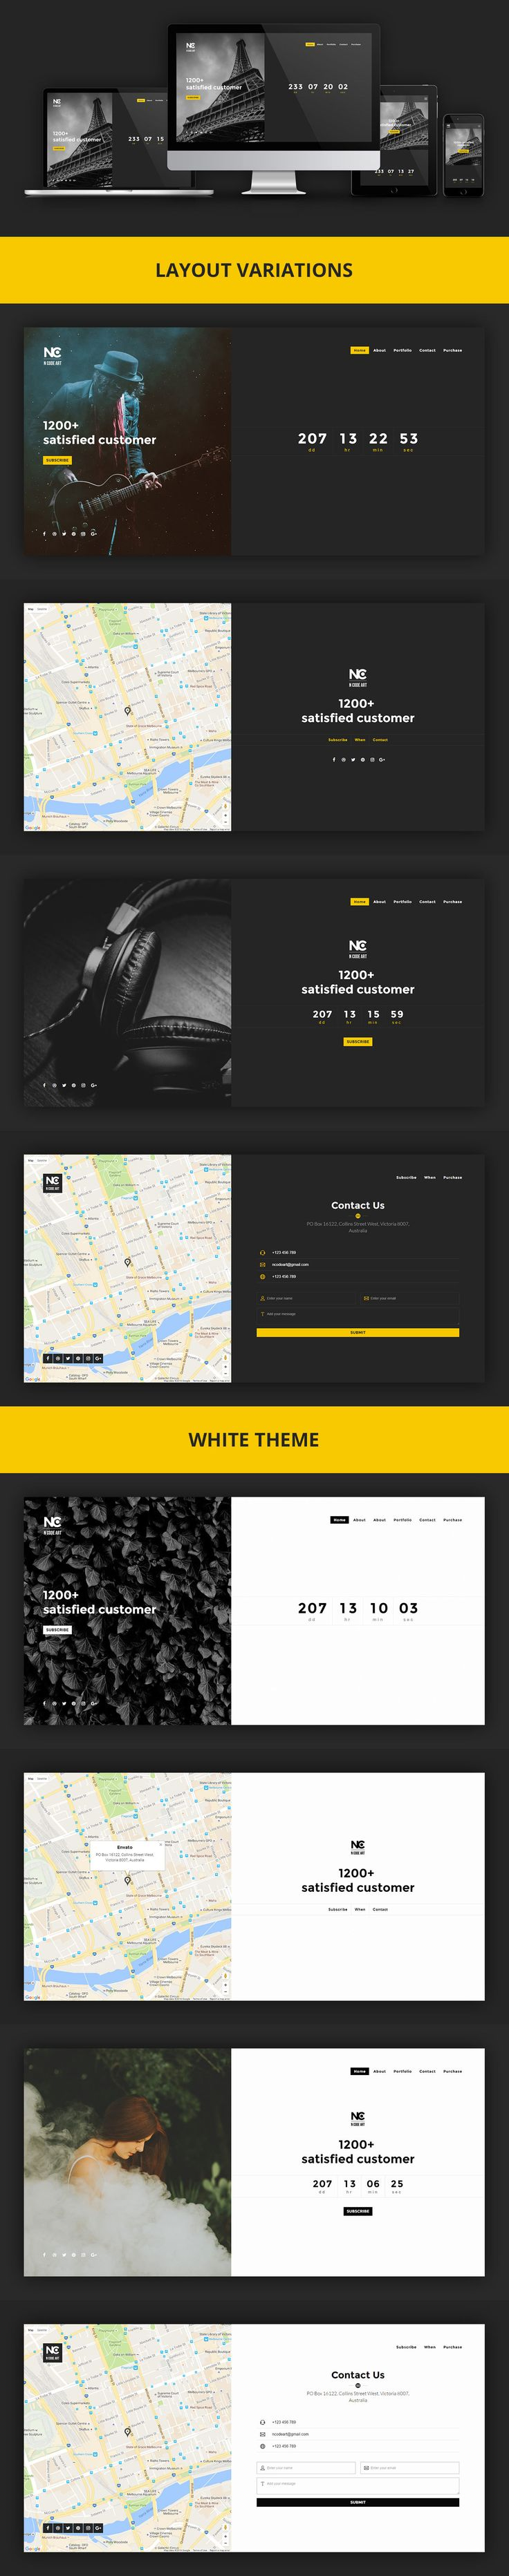 405 best One Page Website Templates images on Pinterest | Design web ...